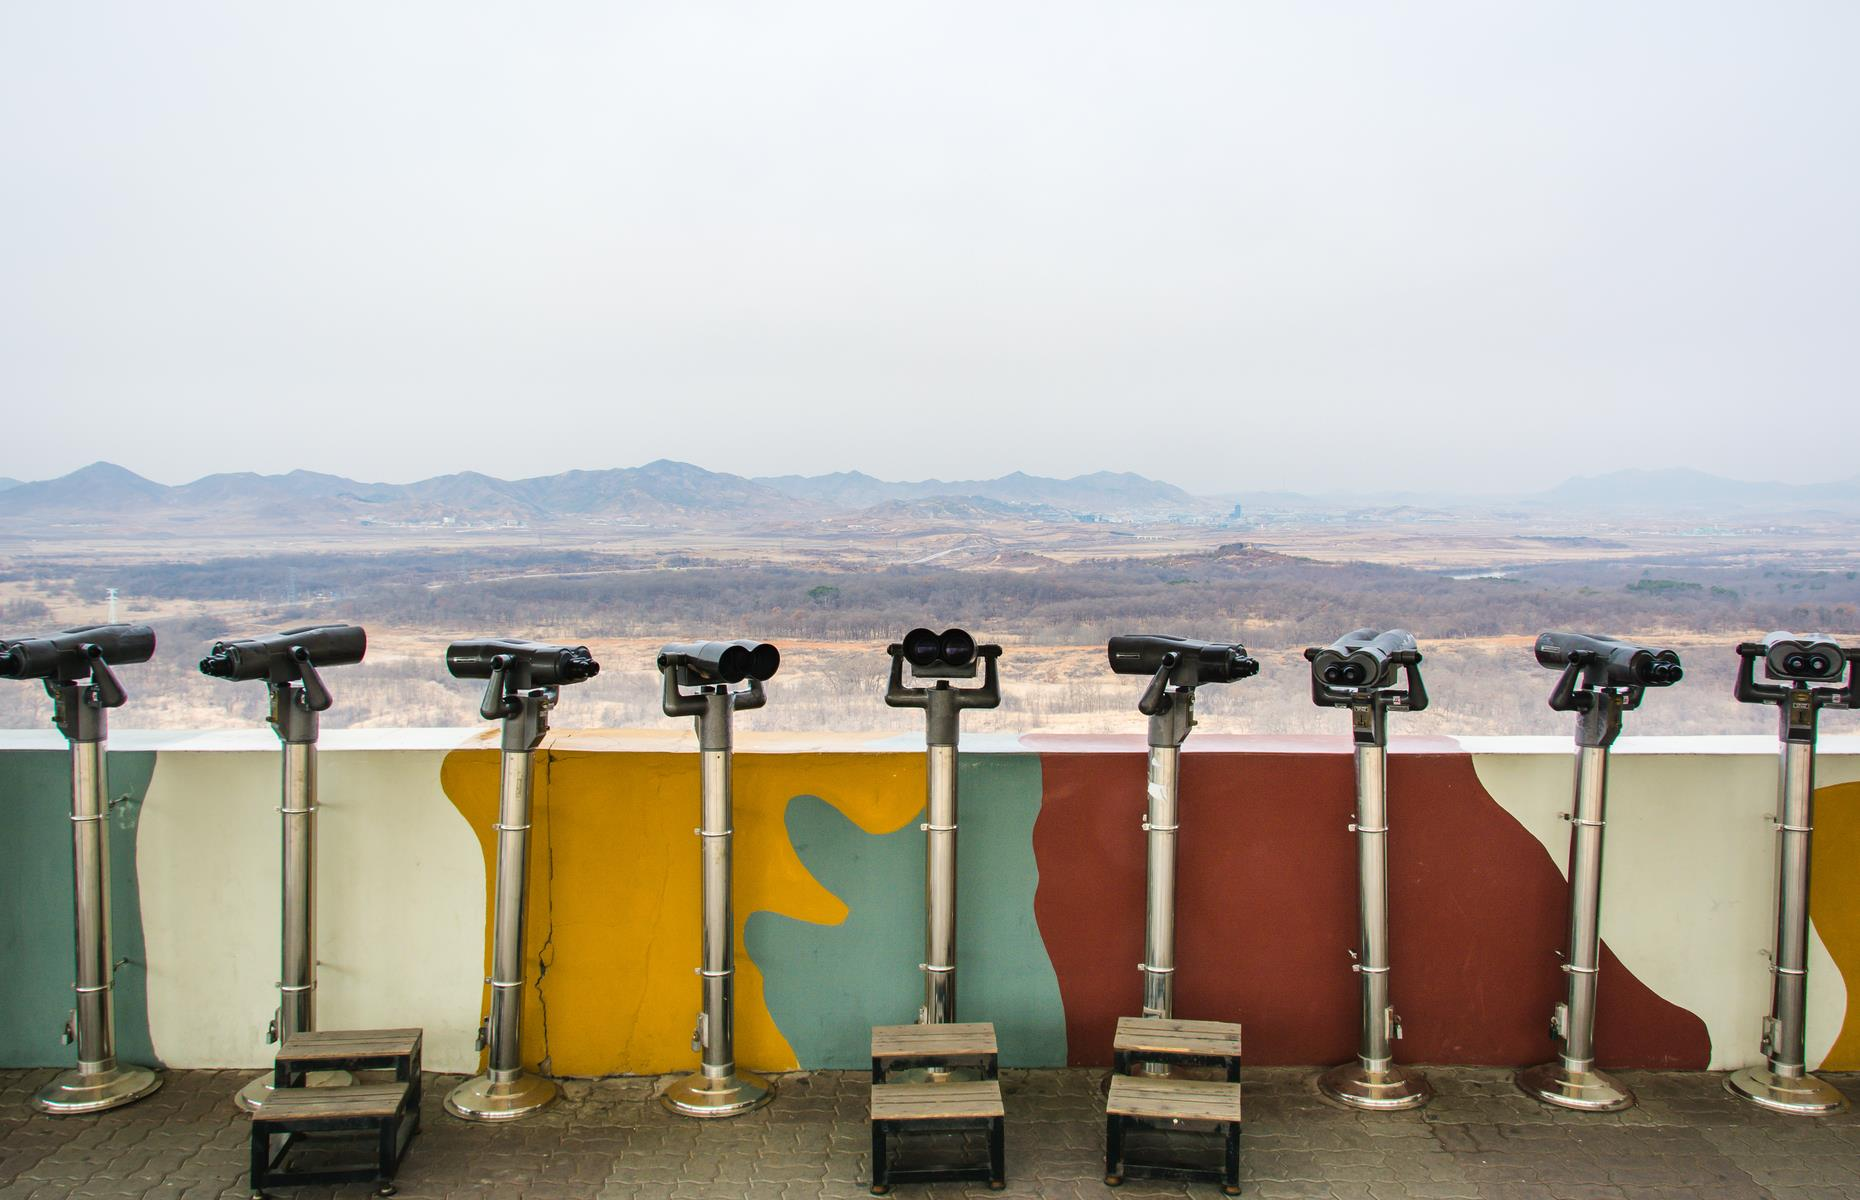 Slide 3 of 51: Albeit a no-go area, the DMZ is also a tourist magnet. More than 1.2 million visitors are usually welcomed every year (typically via Seoul) to see barbed wire fences, infiltration tunnels and glimpse Kim Jong-un's hermit kingdom in the north through binoculars.